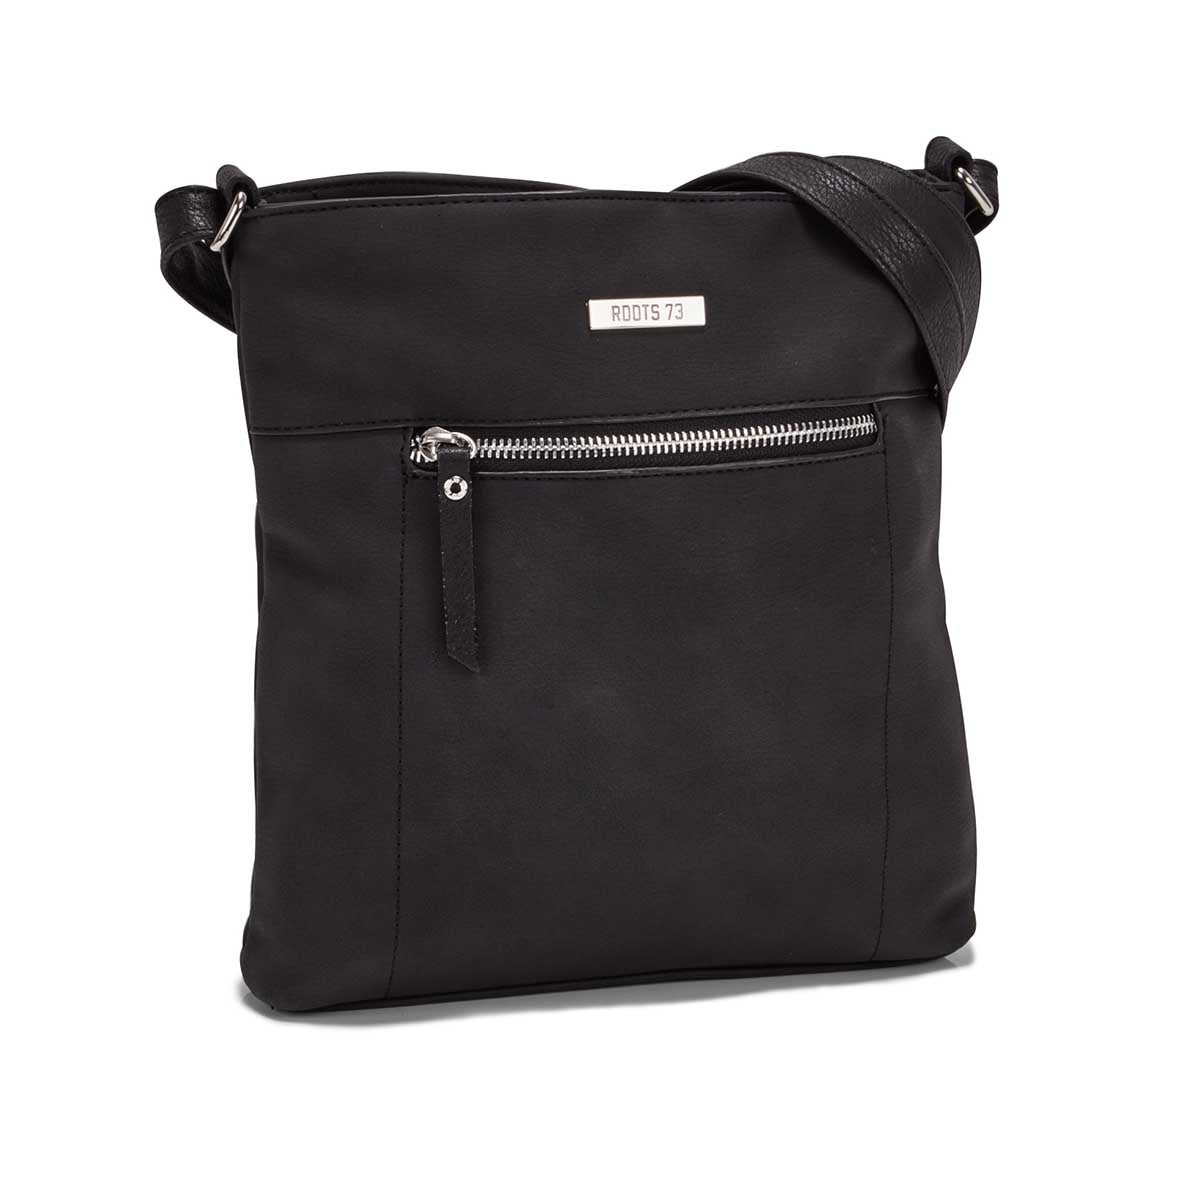 Women's R5547 NORTH/SOUTH black crossbody bag